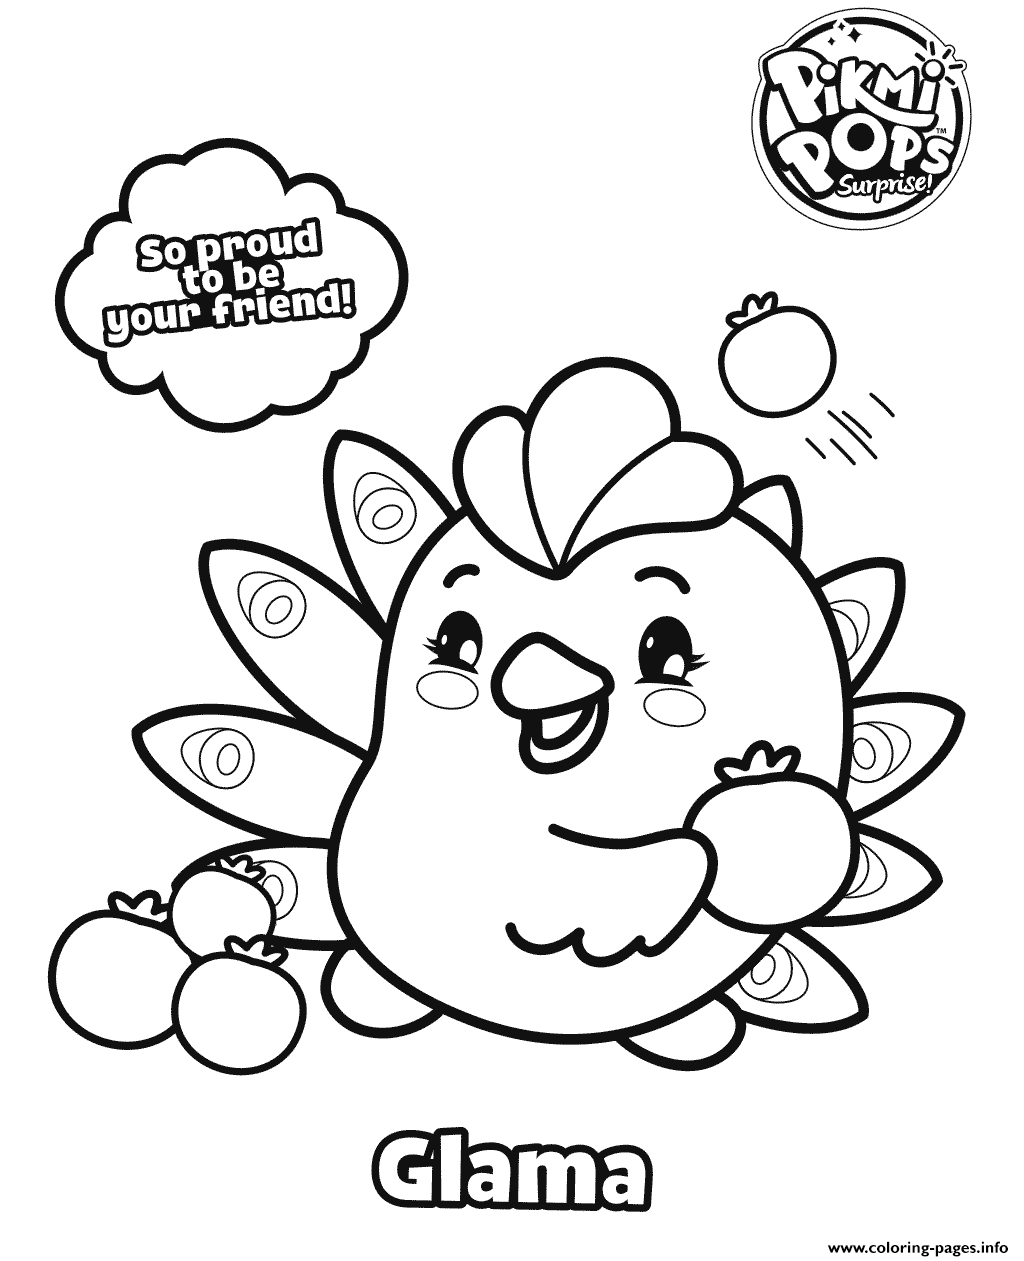 cake pop coloring pages - photo#14